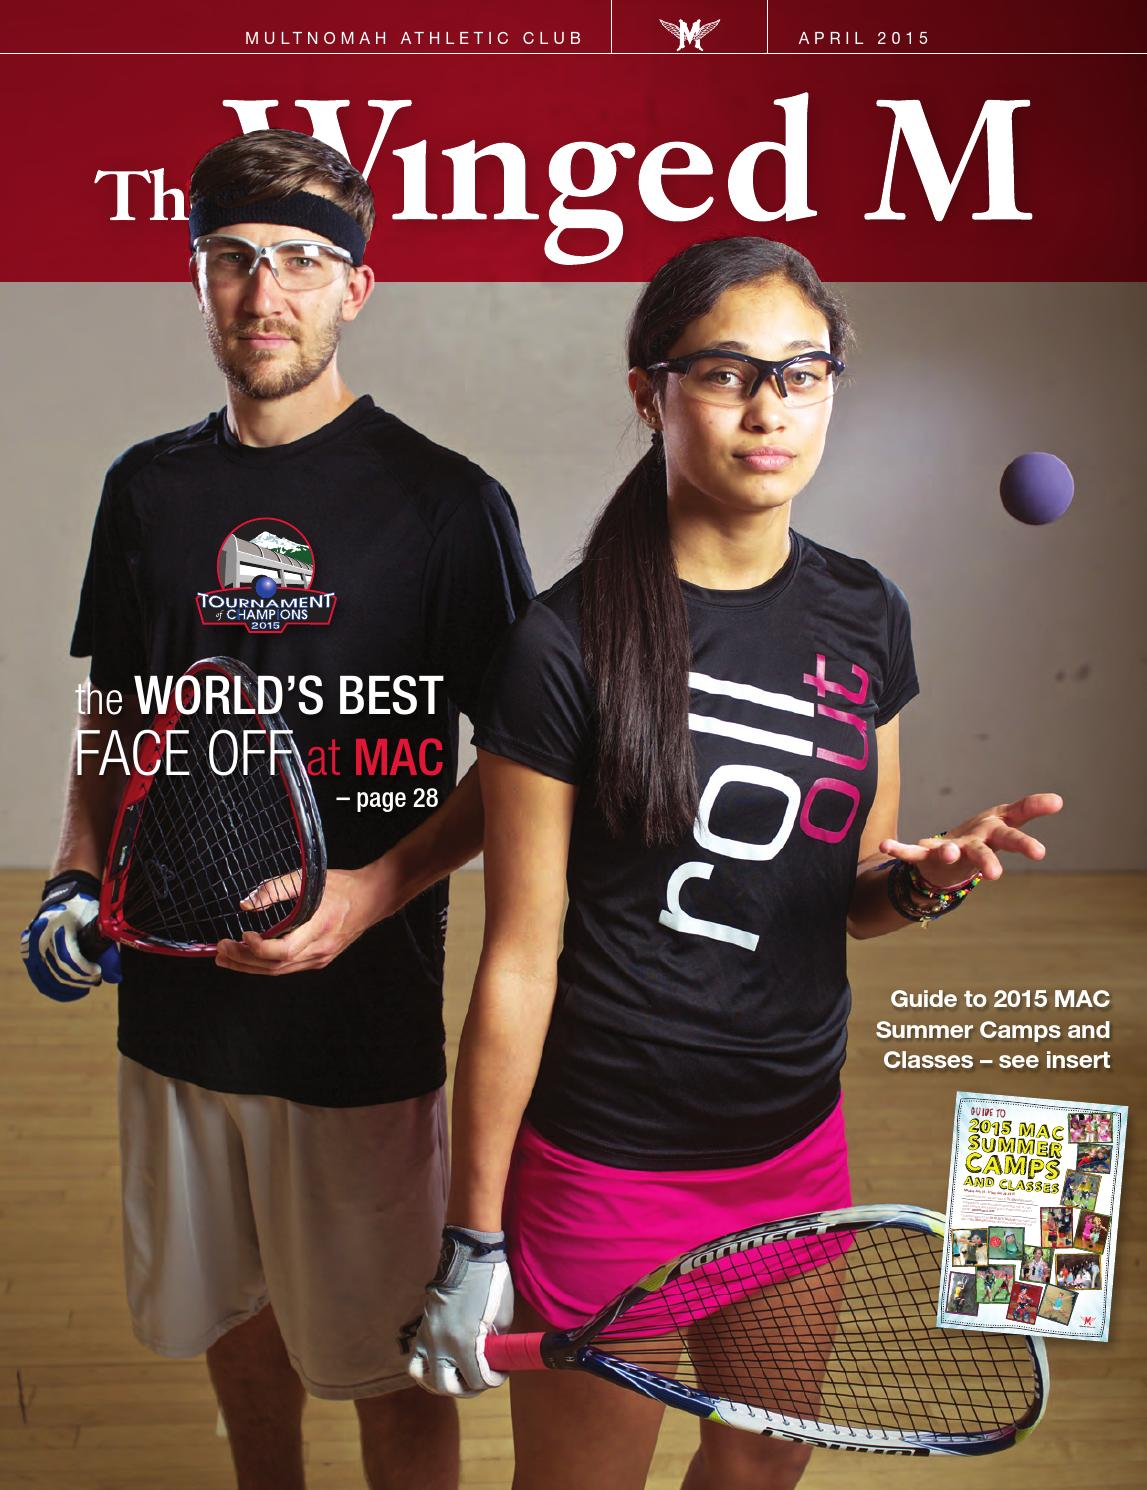 The Winged M April 2015 By Multnomah Athletic Club Issuu